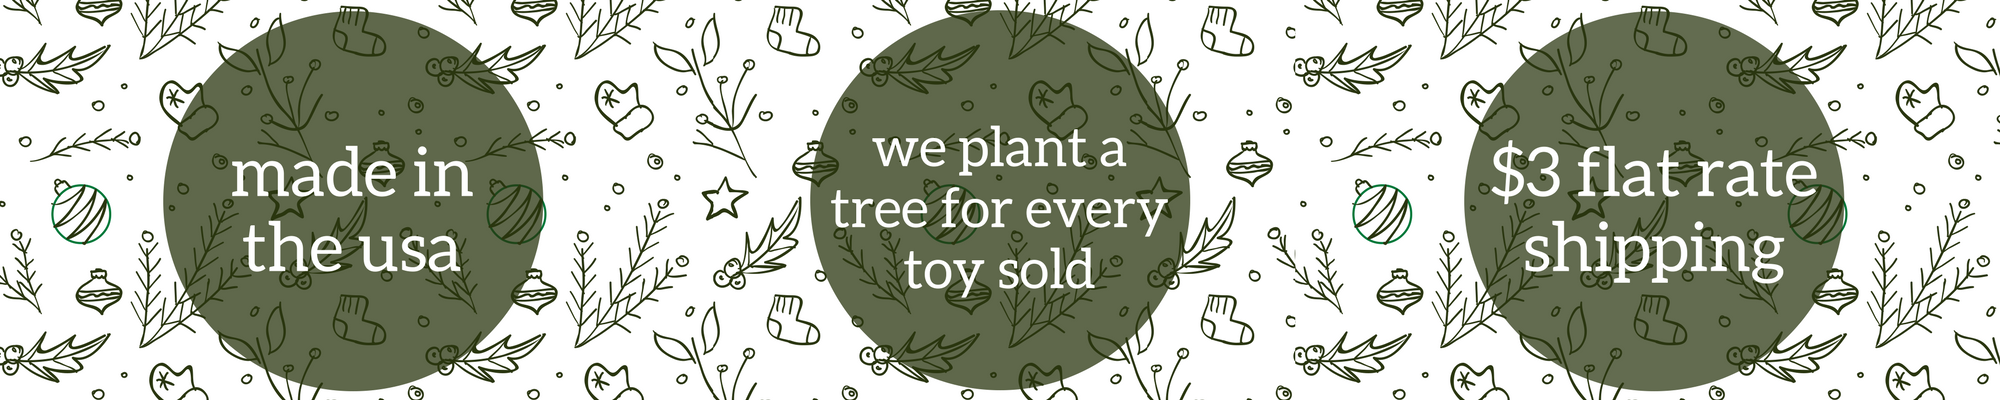 Christmas ordering information for Little Sapling Toys